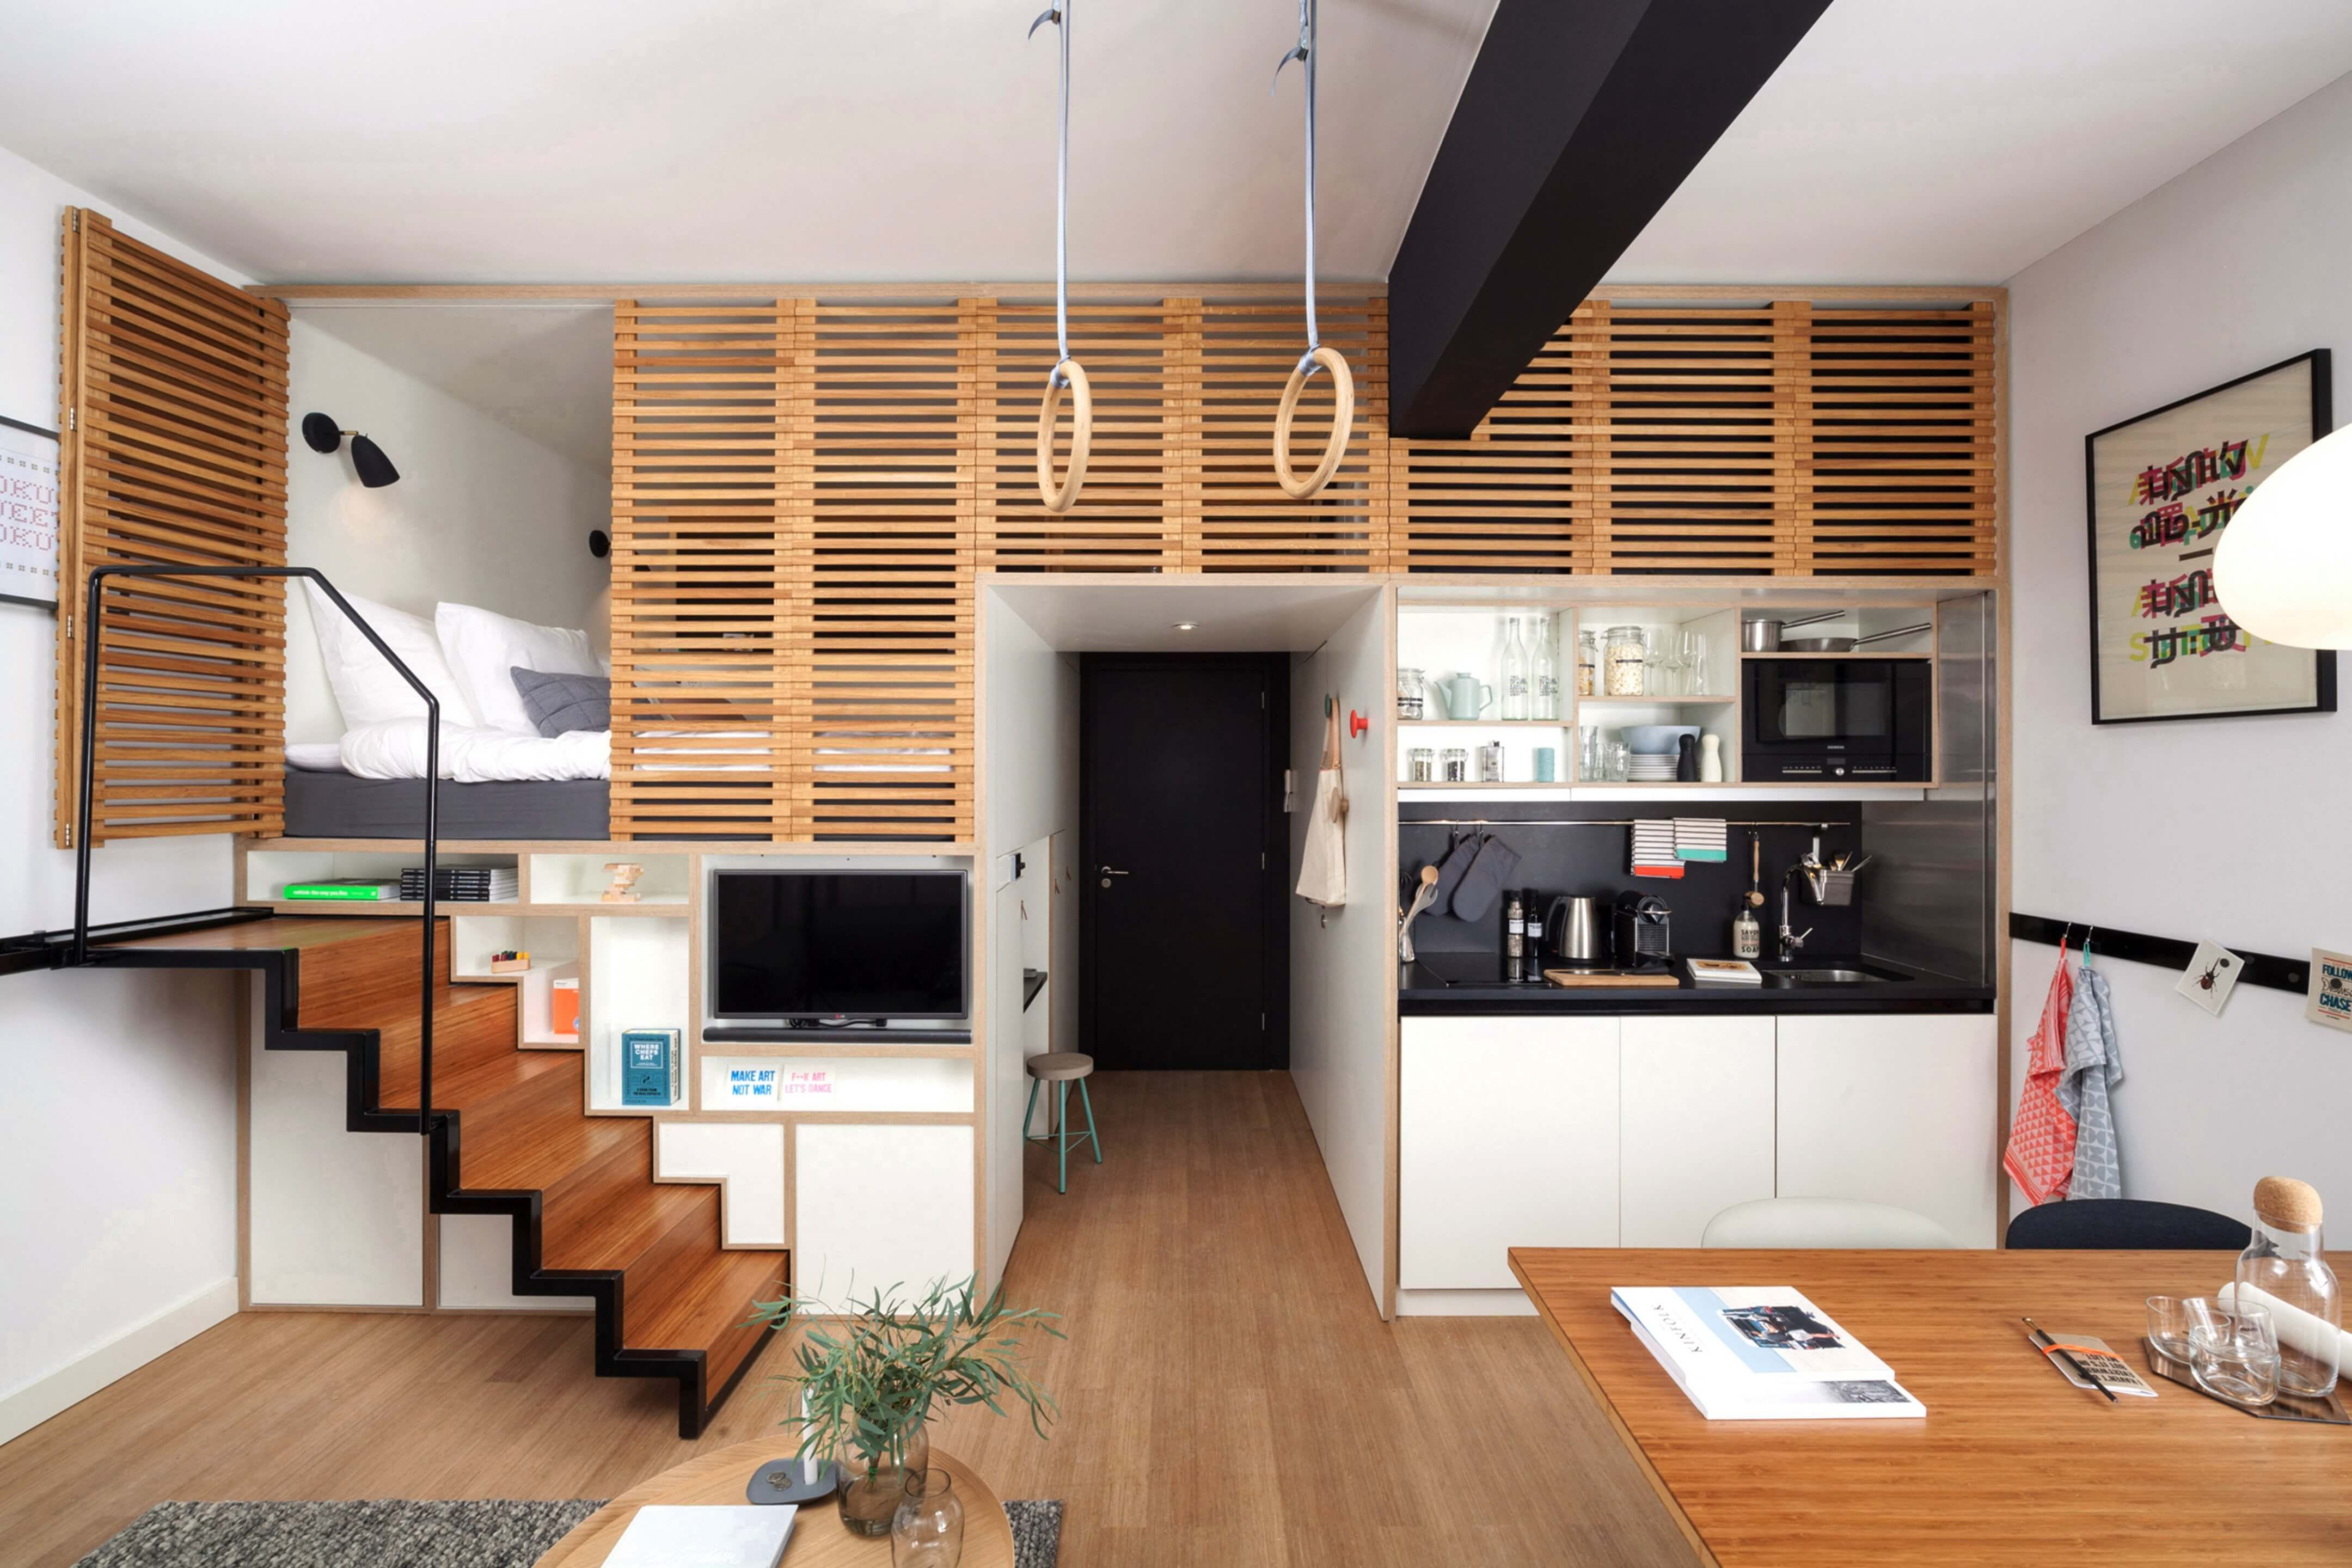 Zoku Loft by Concrete Architectural Associates Zoku